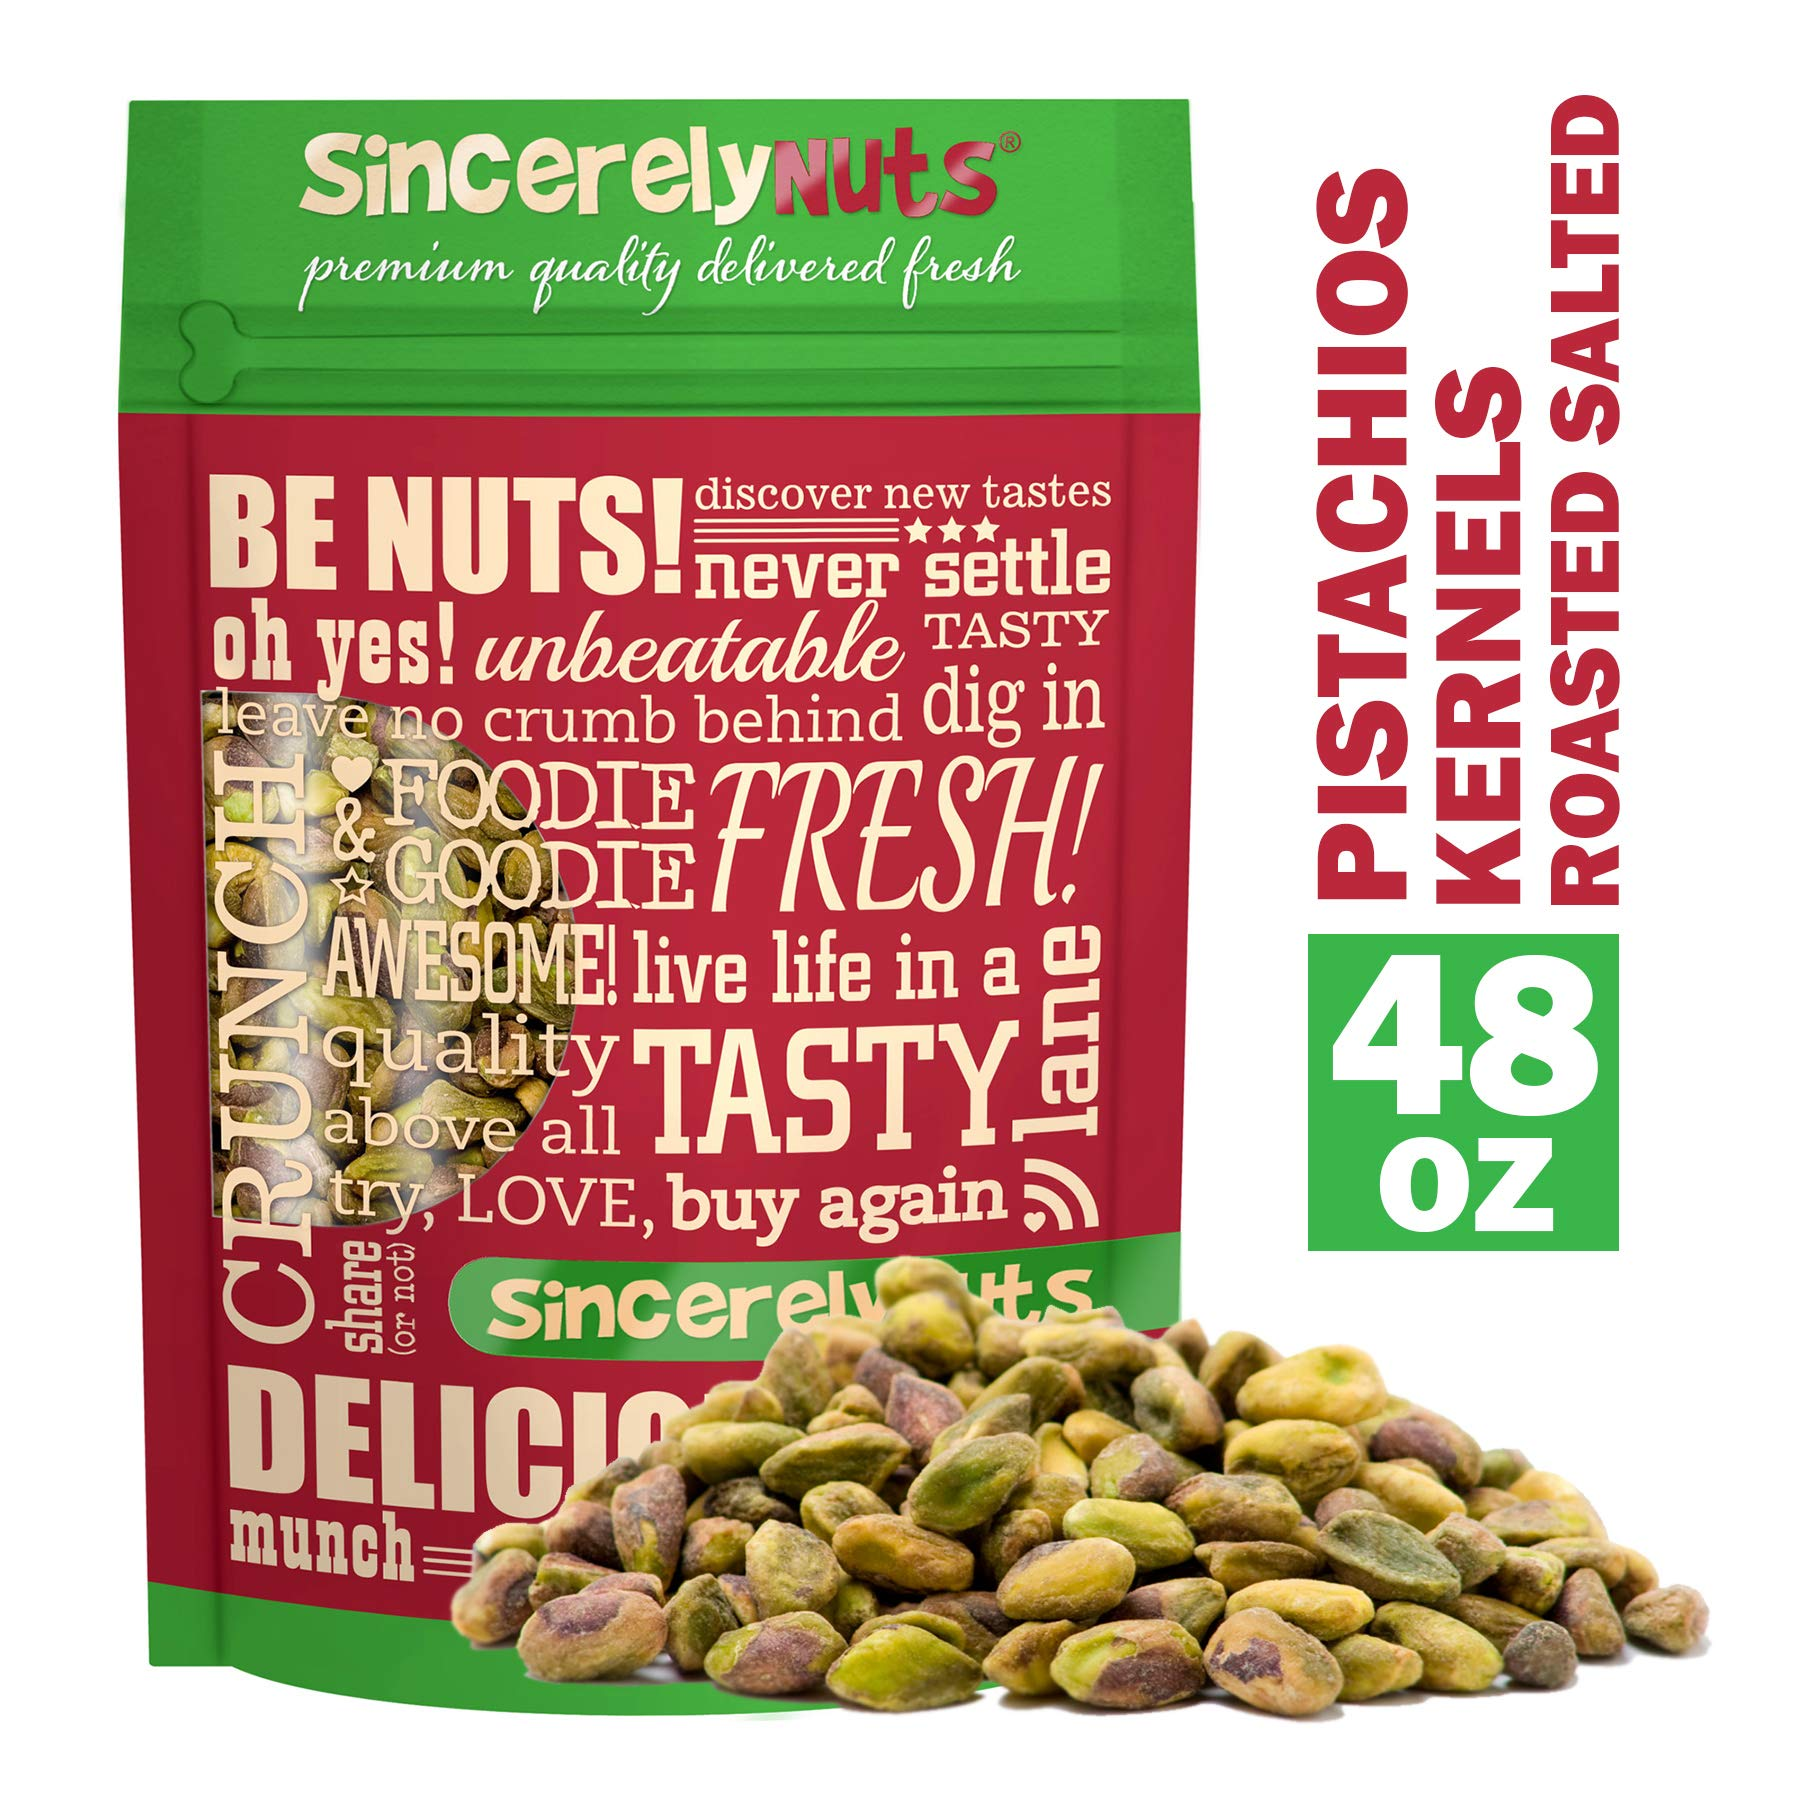 Sincerely Nuts Pistachios Roasted and Salted Kernels (Meats) No Shell - 3 Lb. Bag - | Healthy Snack Food | Great for Cooking | Source of Fiber & Protein | Gourmet Flavor | Vegan, Kosher & Gluten Free